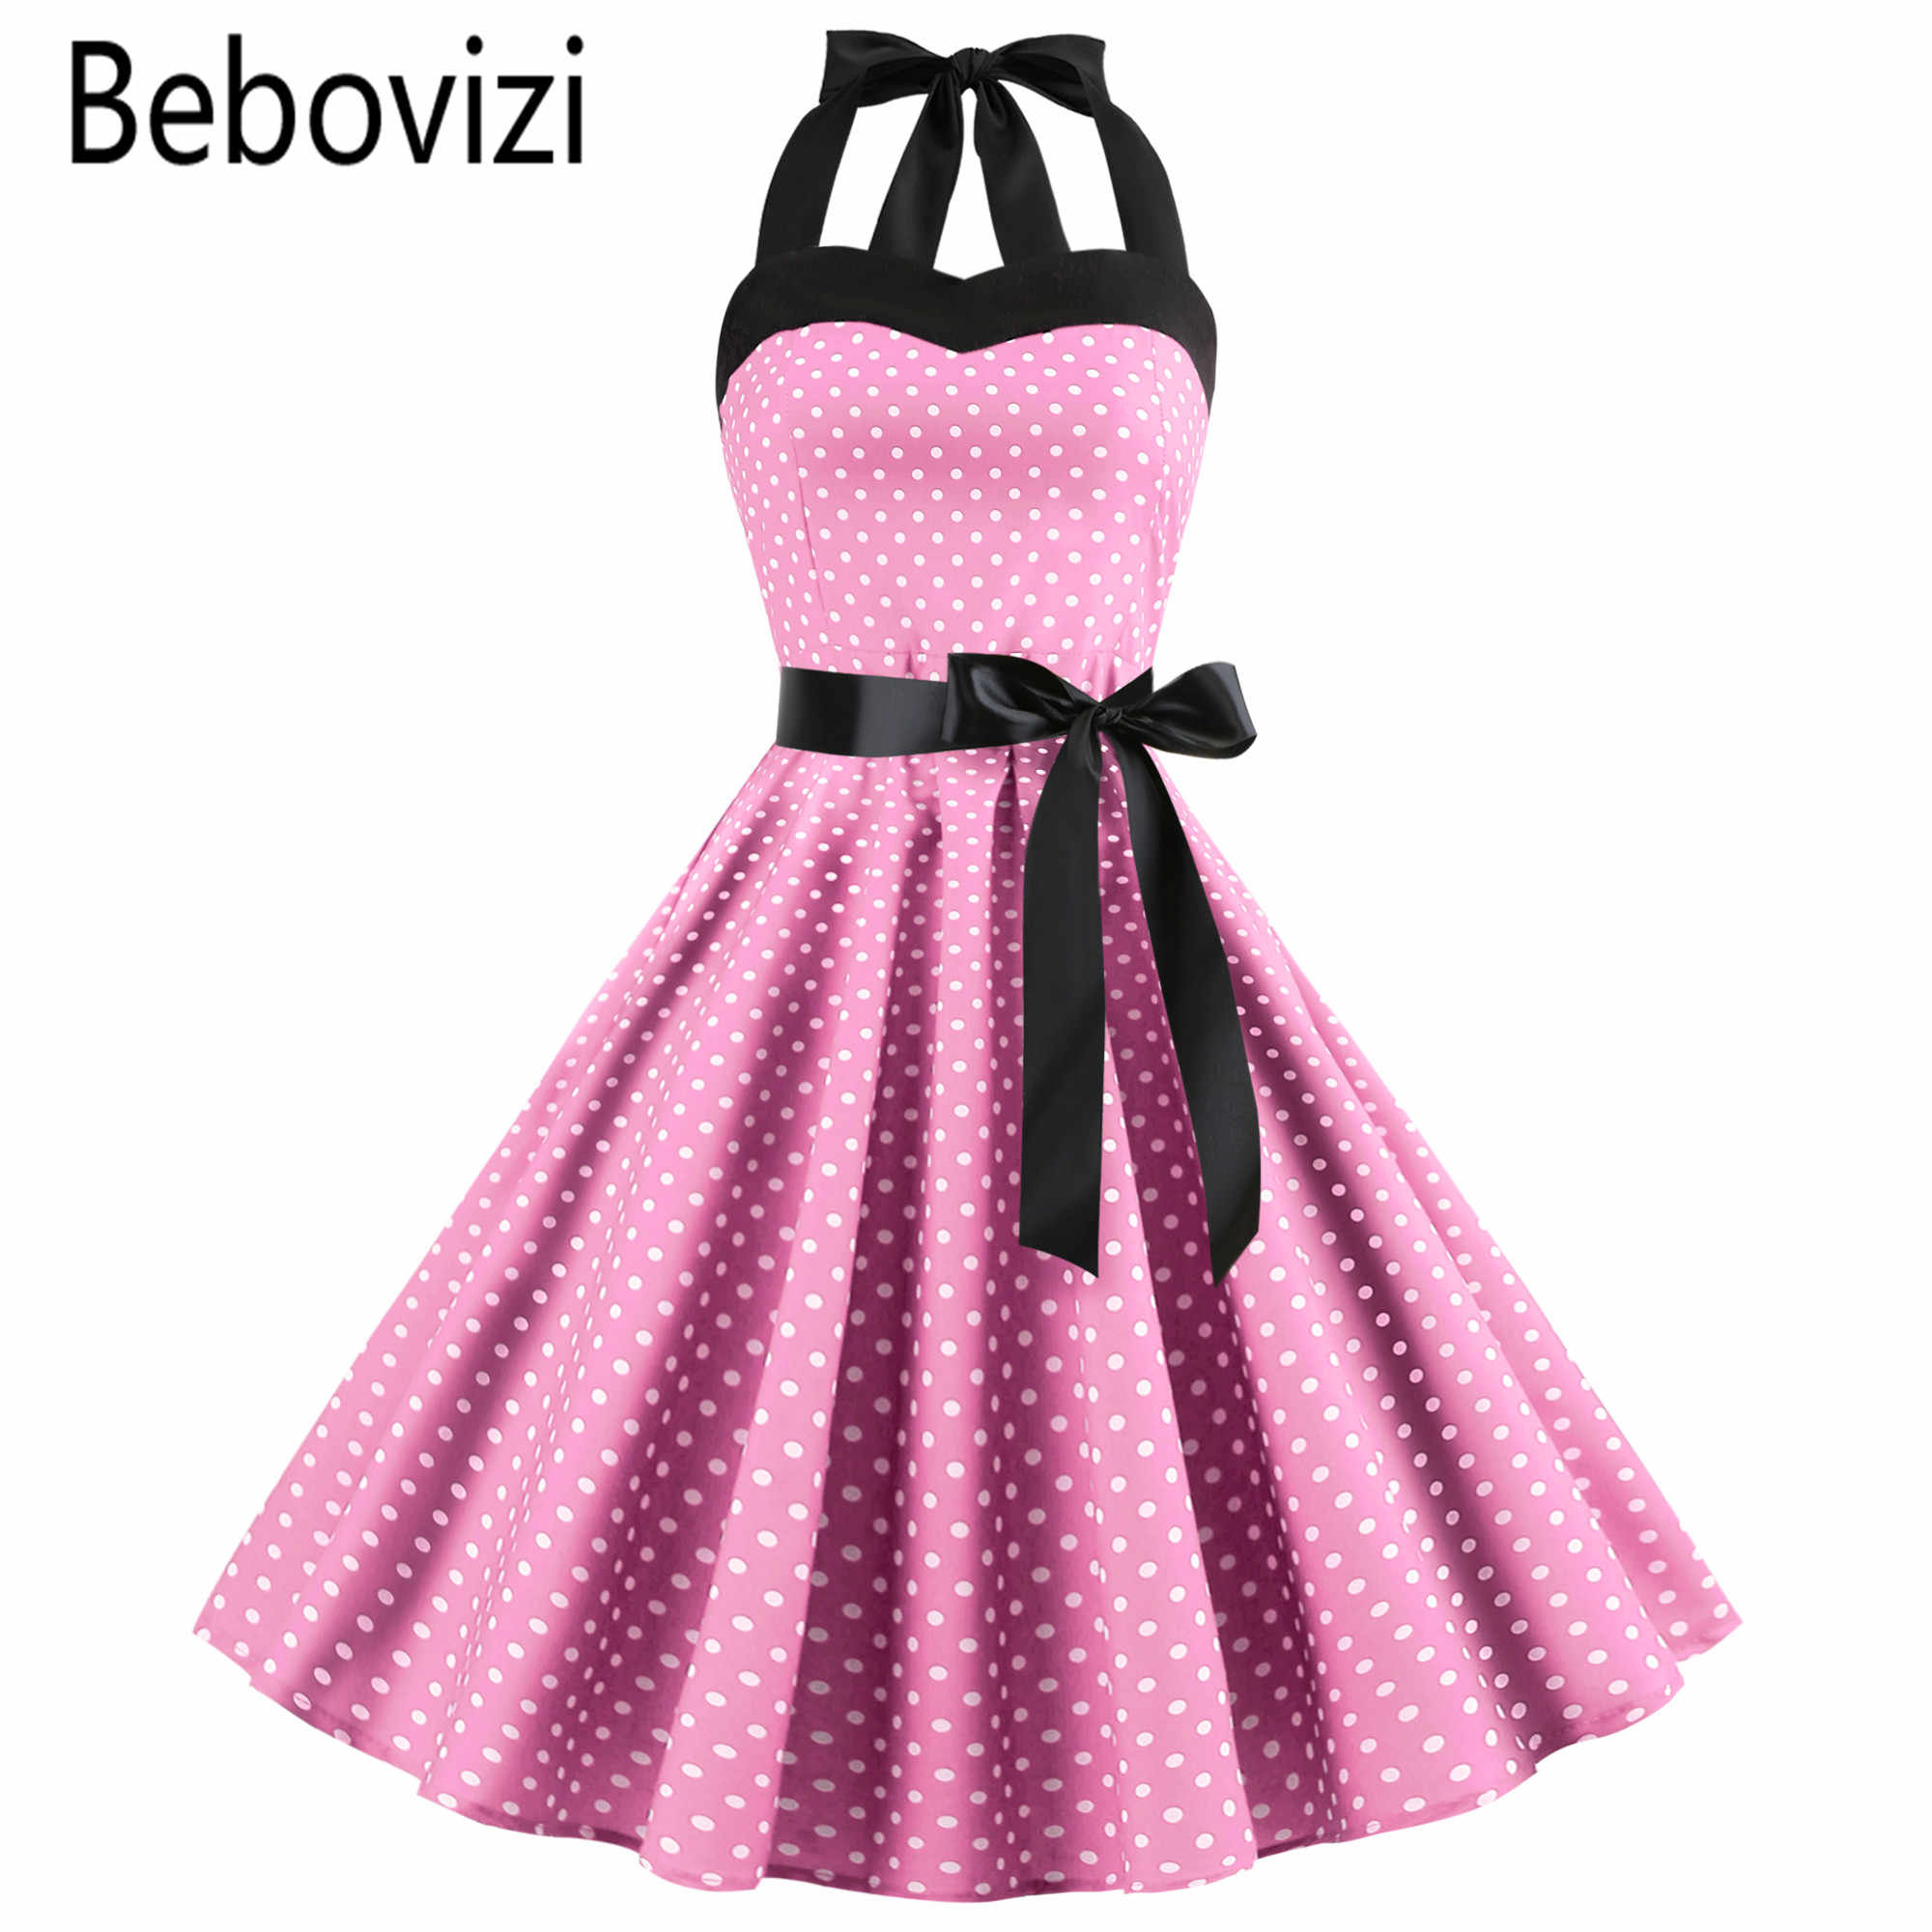 Novo 2019 Rosa Midi Vestido Polka Dot Retro Hepburn 60 50s s Halter Partido Do Vintage Pin Up Rockabilly es robe Plus Size